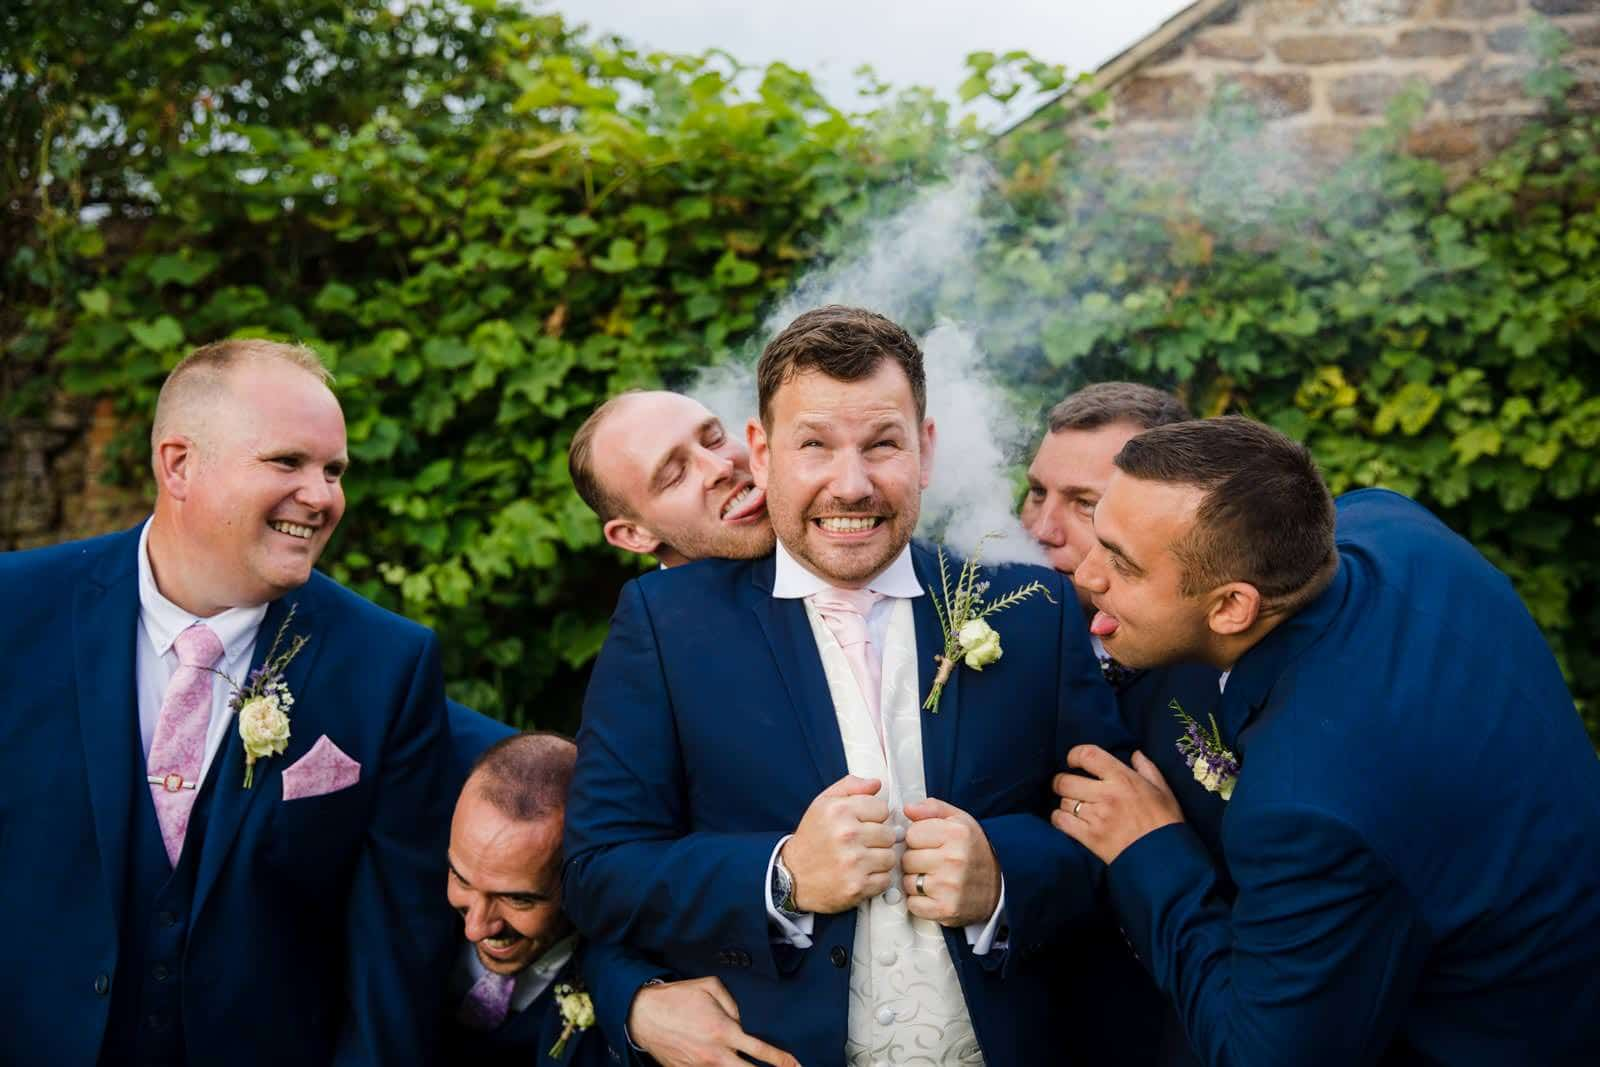 Groom feeling the heat and hot under the collar